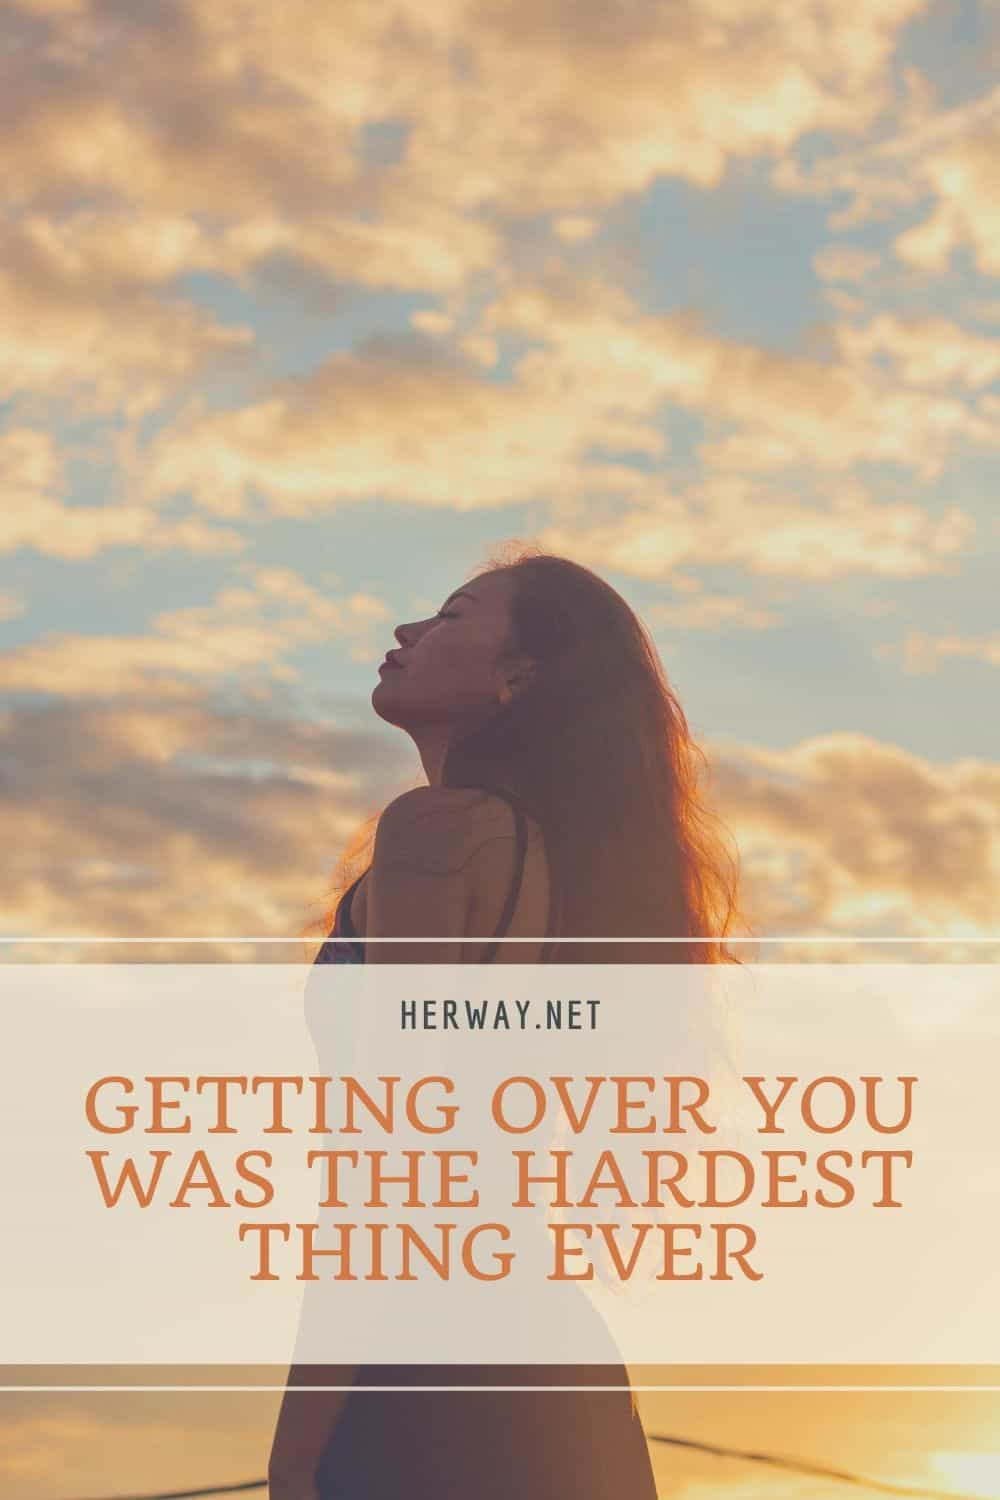 GETTING OVER YOU WAS THE HARDEST THING EVER